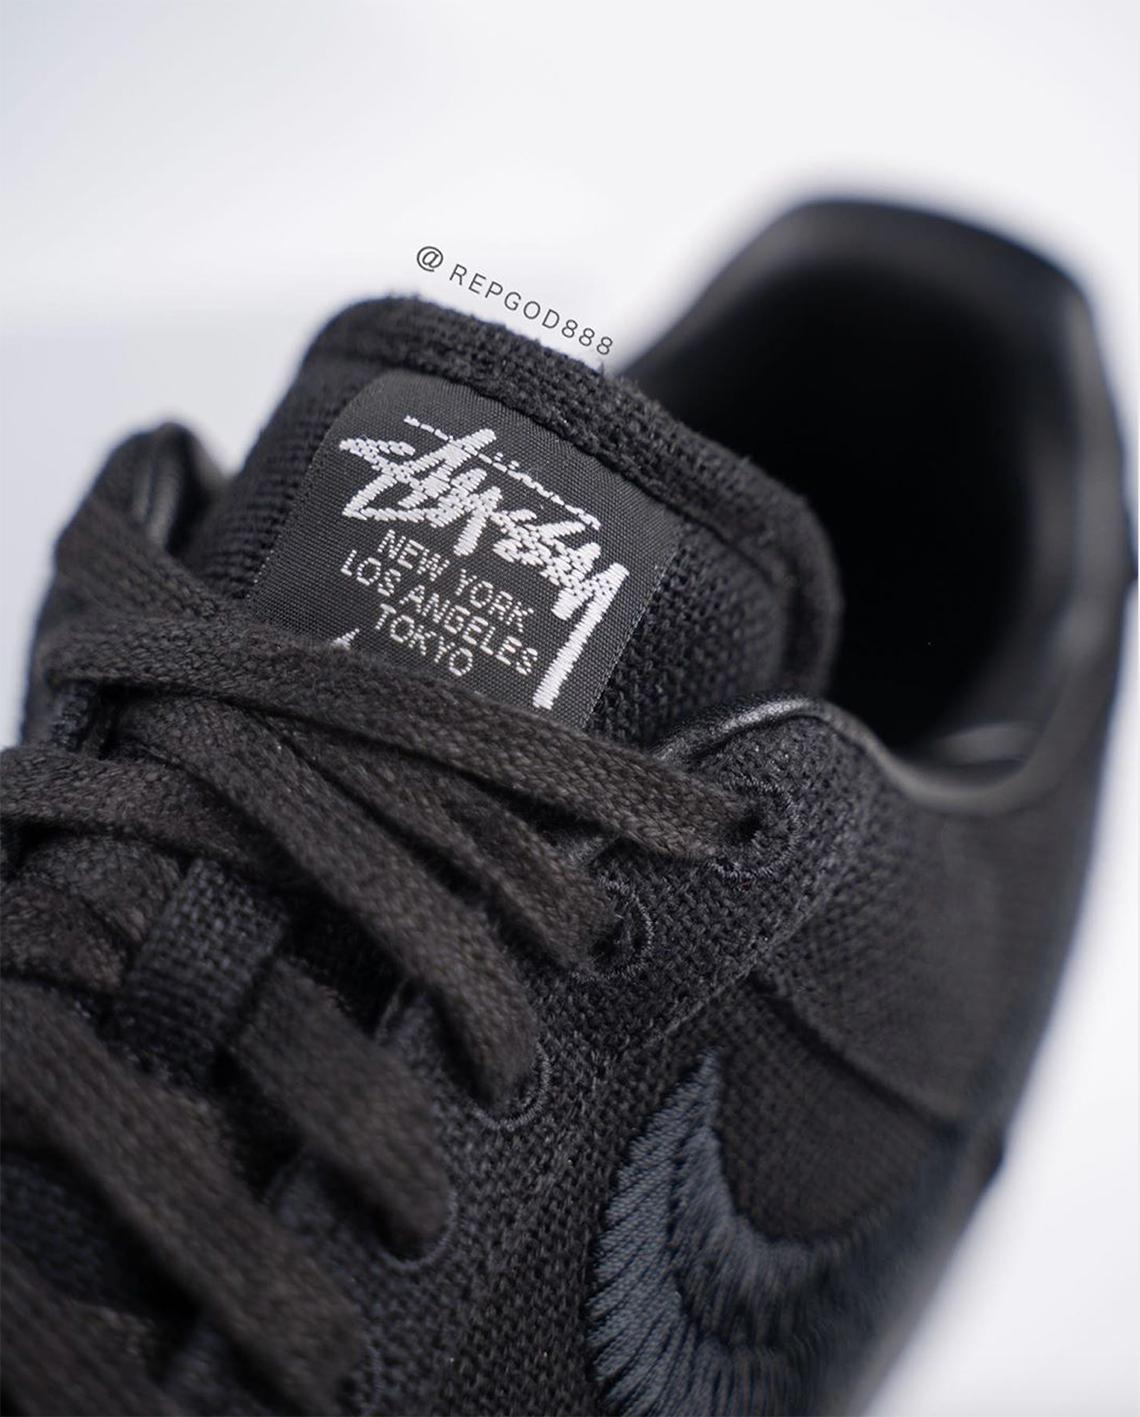 Stussy double la collaboration Nike Air Force 1